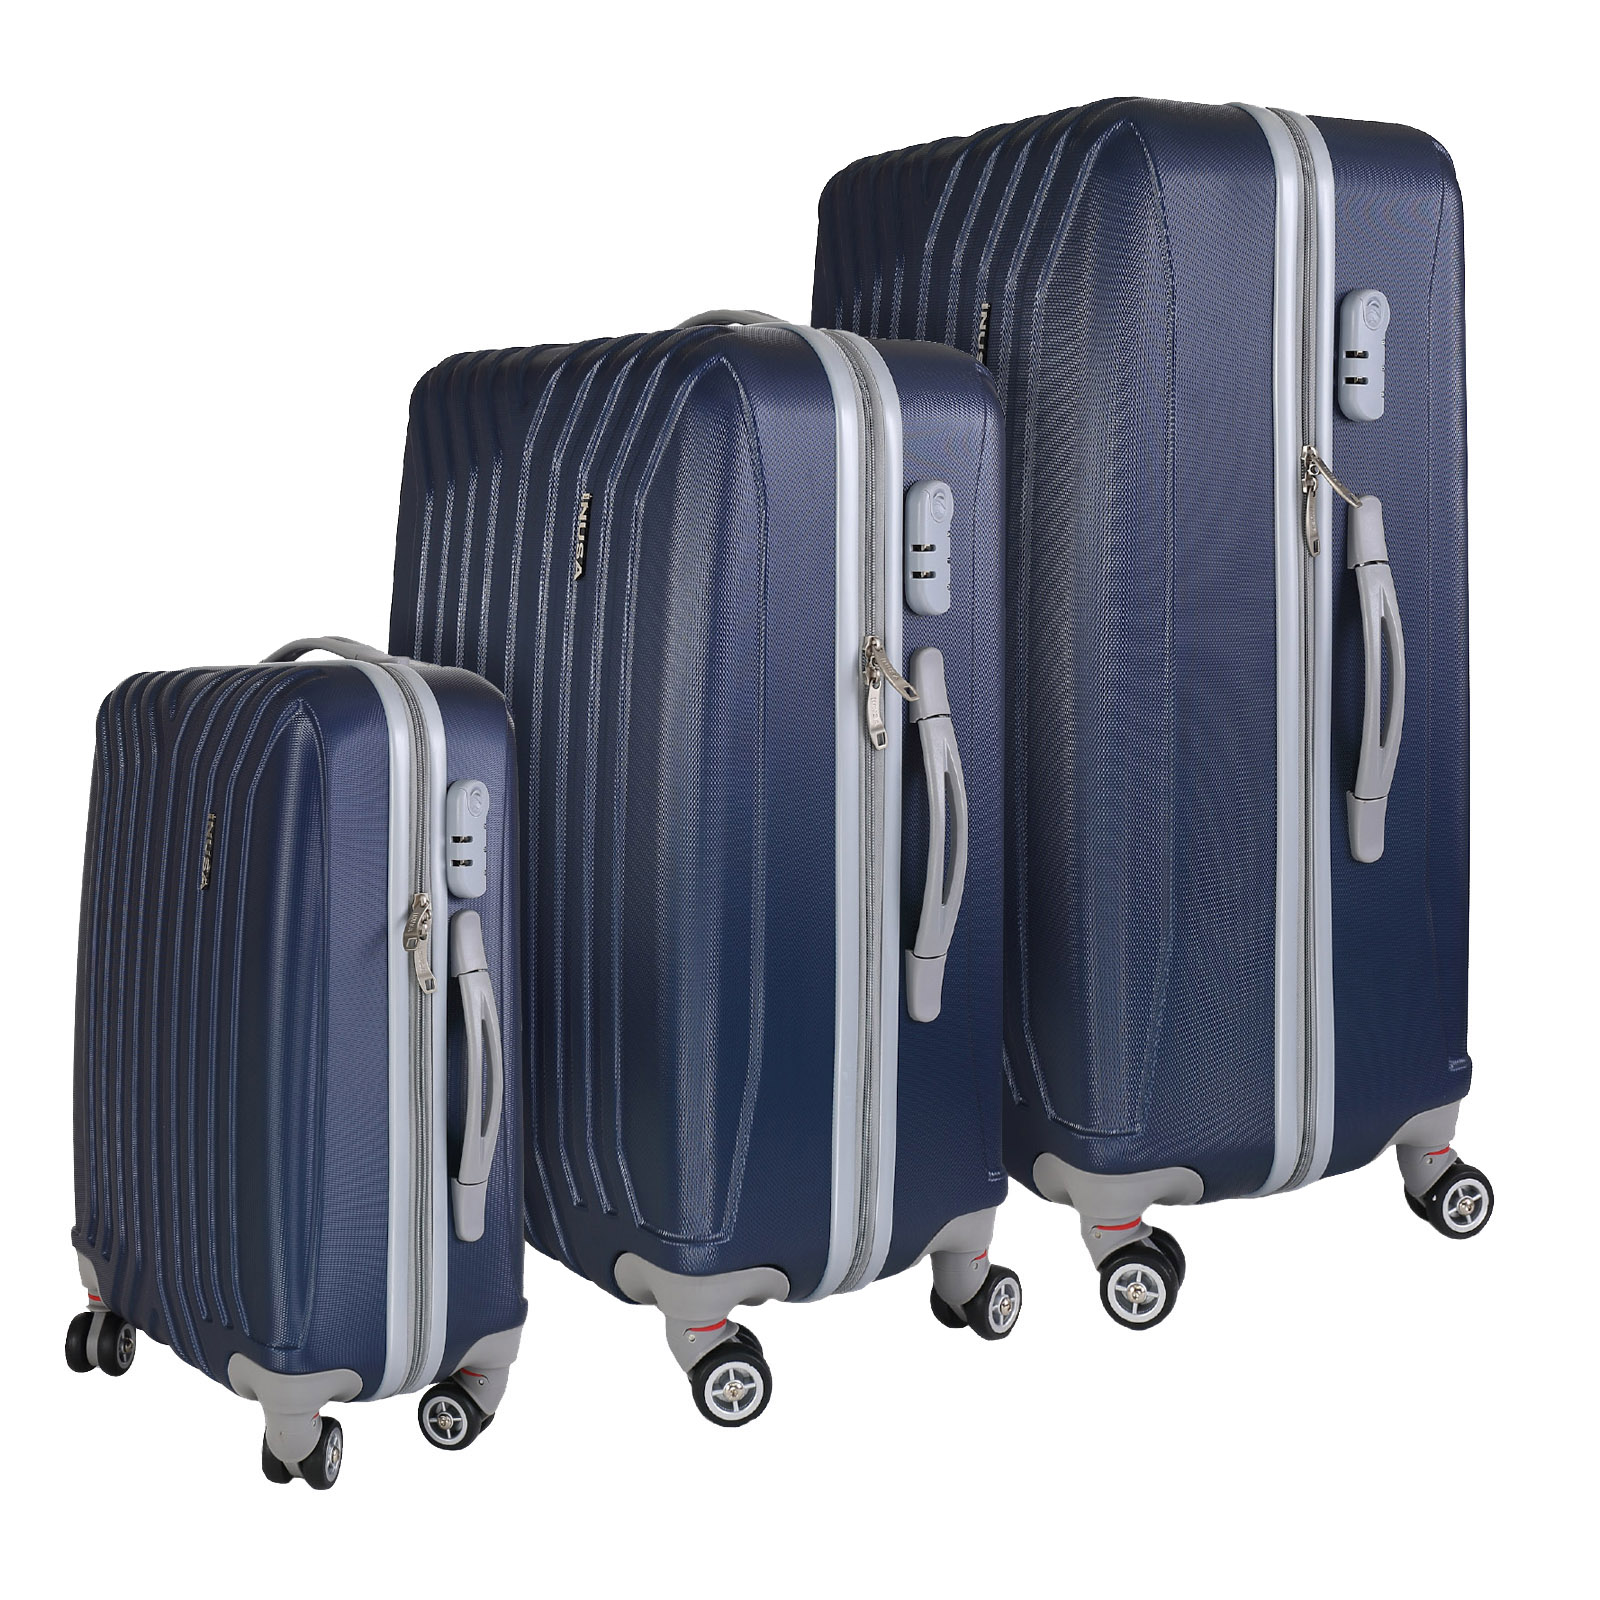 InUSA Miami collection 3-piece lightweight hardside spinner luggage set - IUMIASMB-BLU